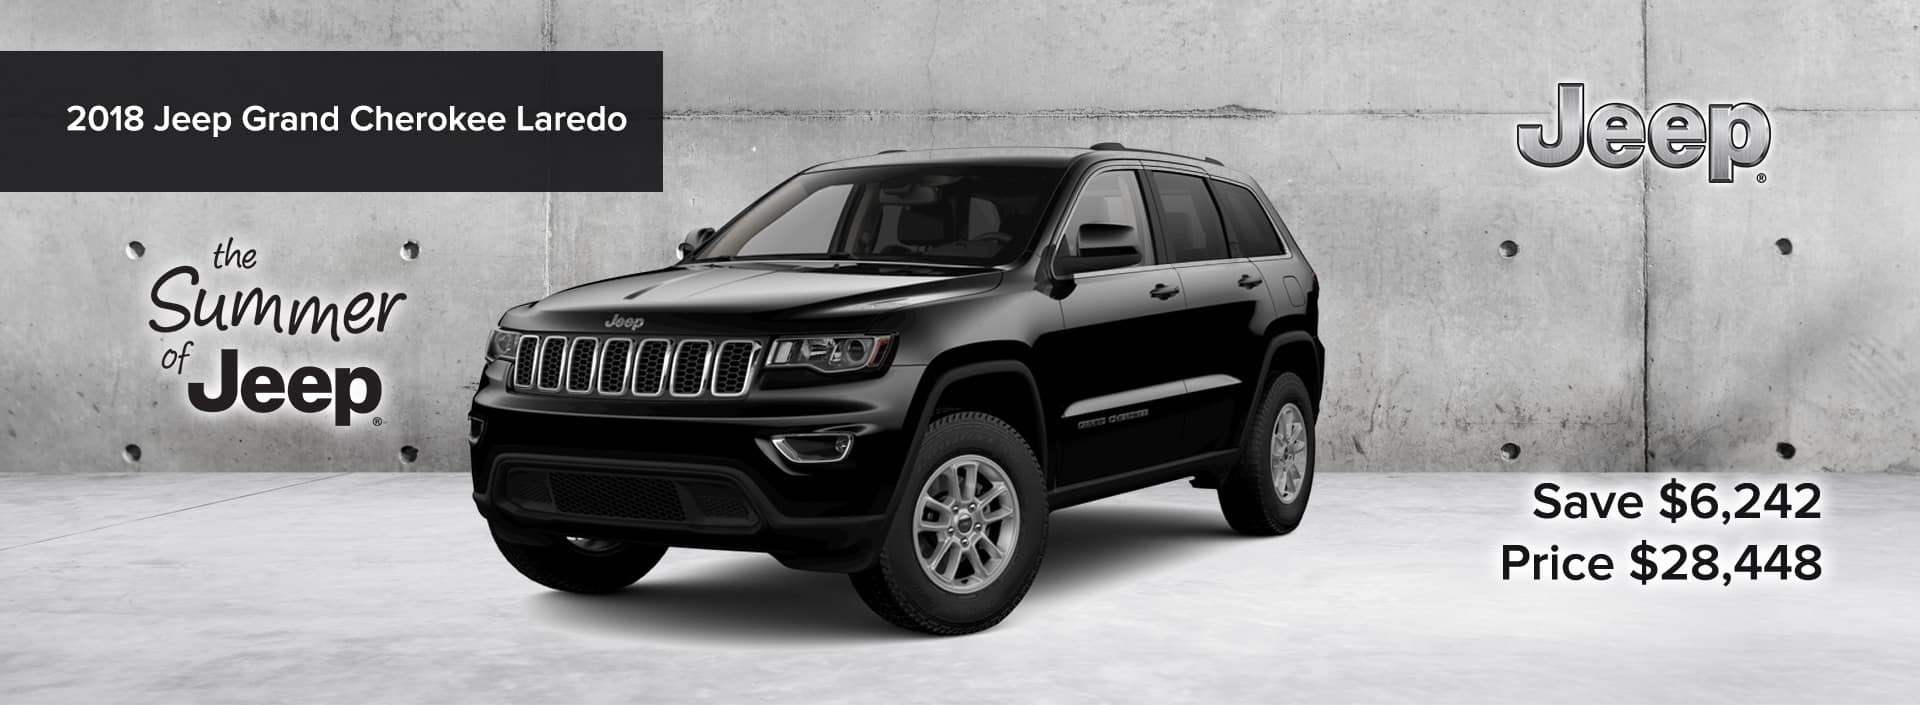 2018 Jeep Grand Cherokee The Summer of Jeep Event_August 2019 desktop